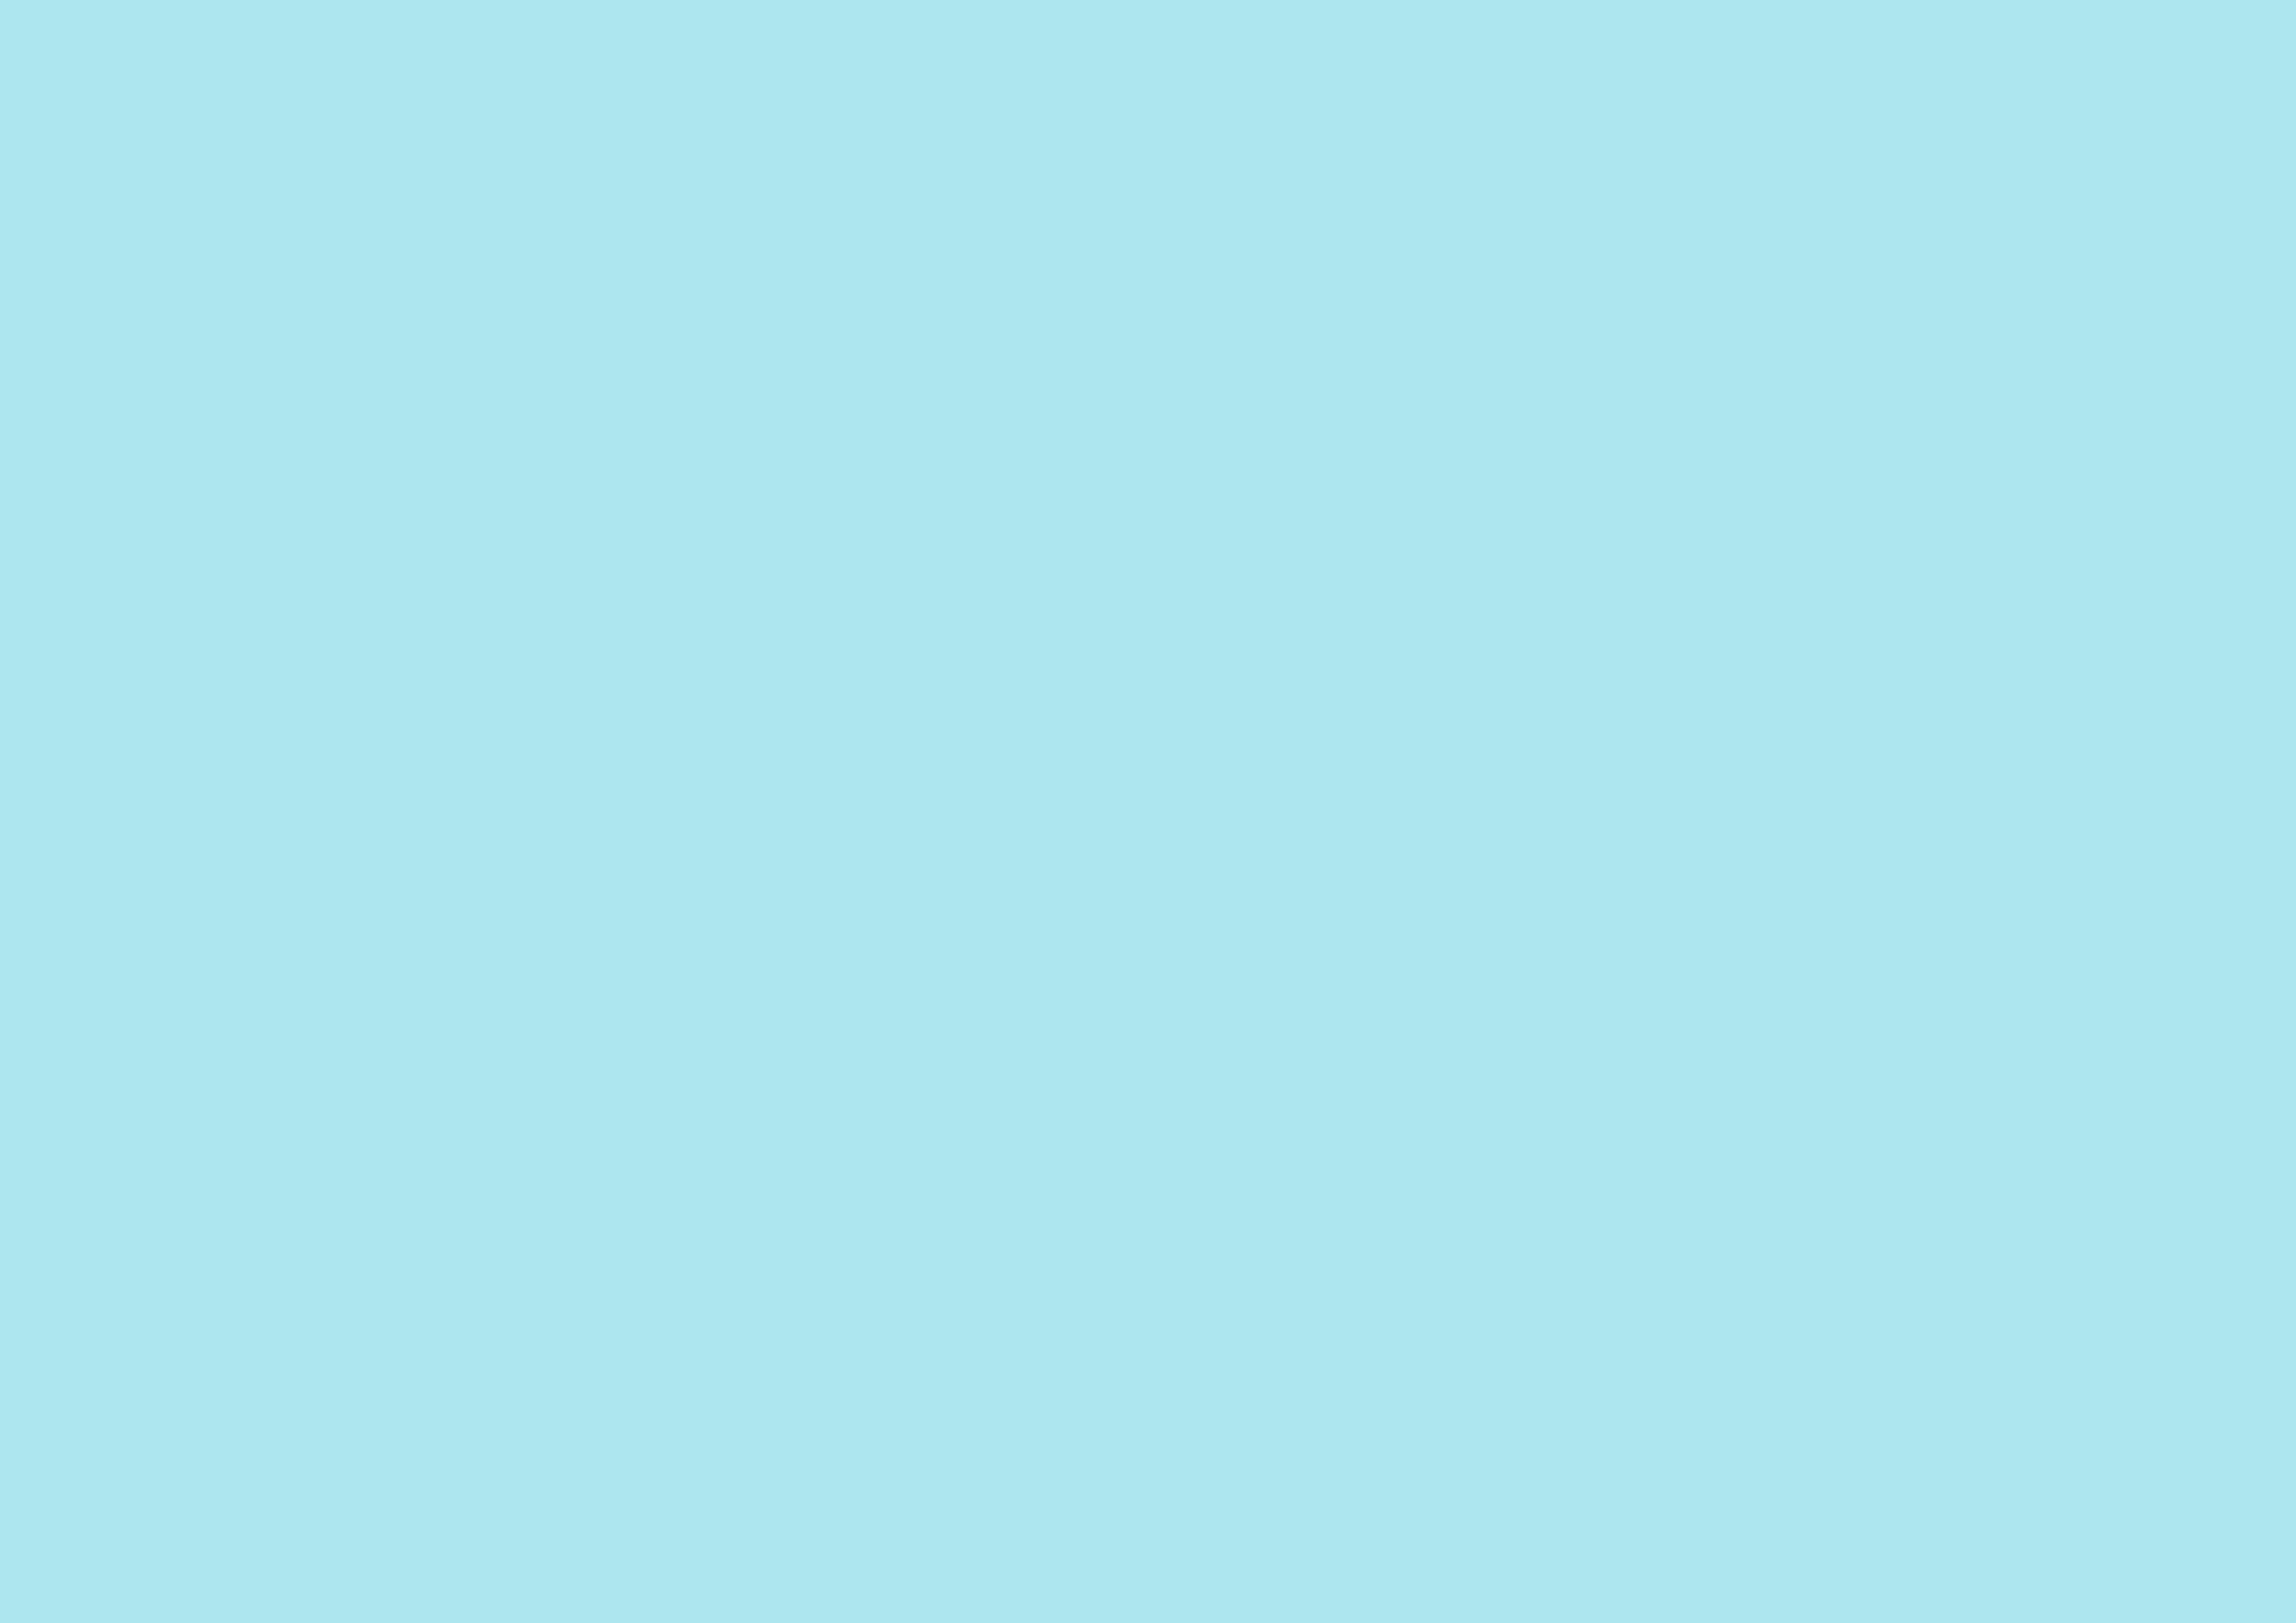 3508x2480 Blizzard Blue Solid Color Background